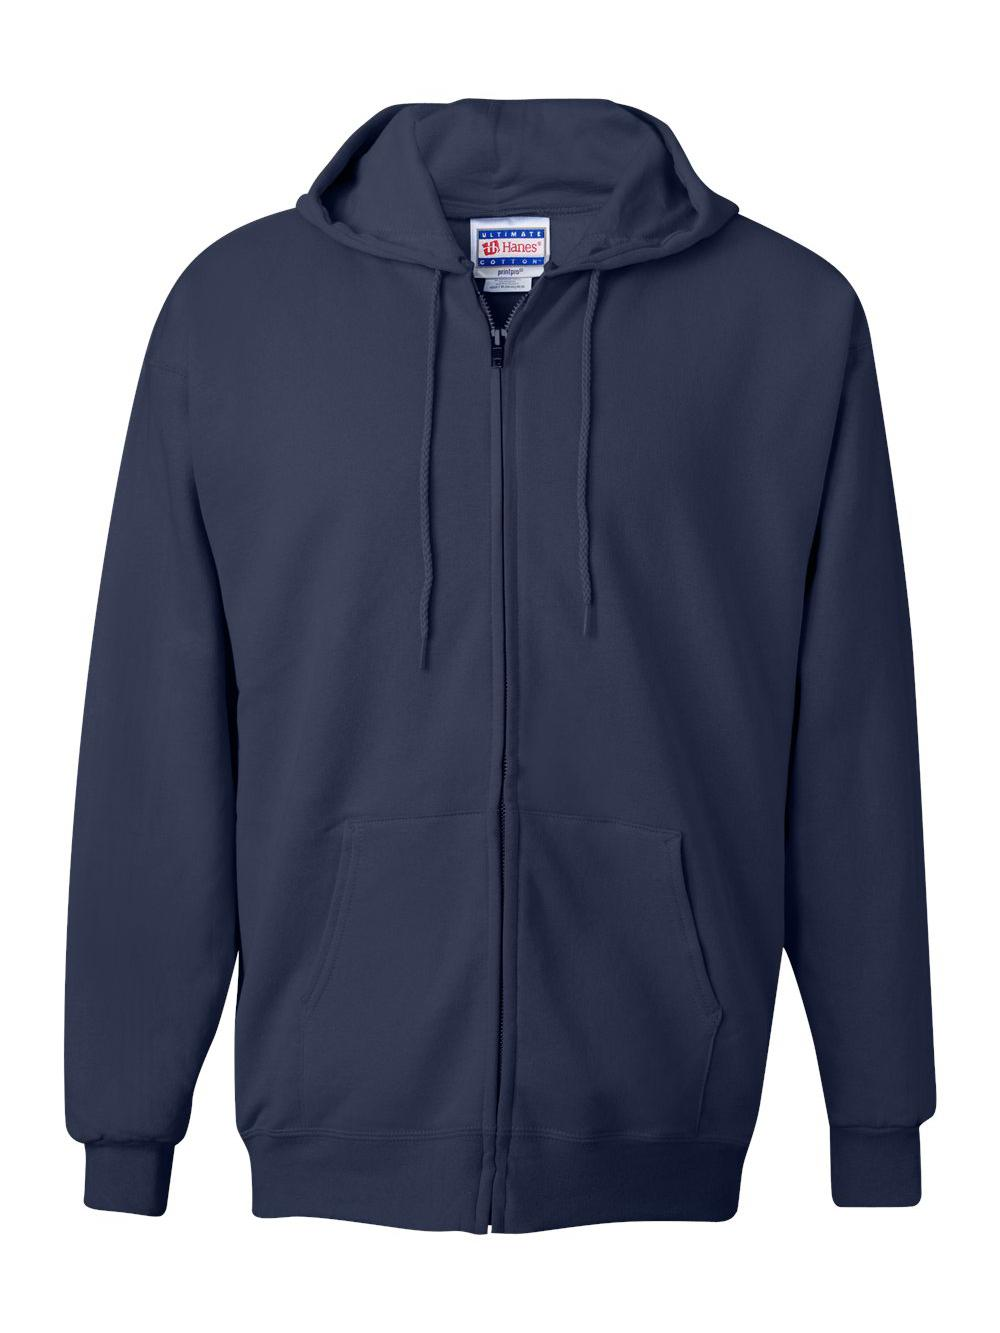 Hanes-Ultimate-Cotton-Full-Zip-Hooded-Sweatshirt-F280 thumbnail 15